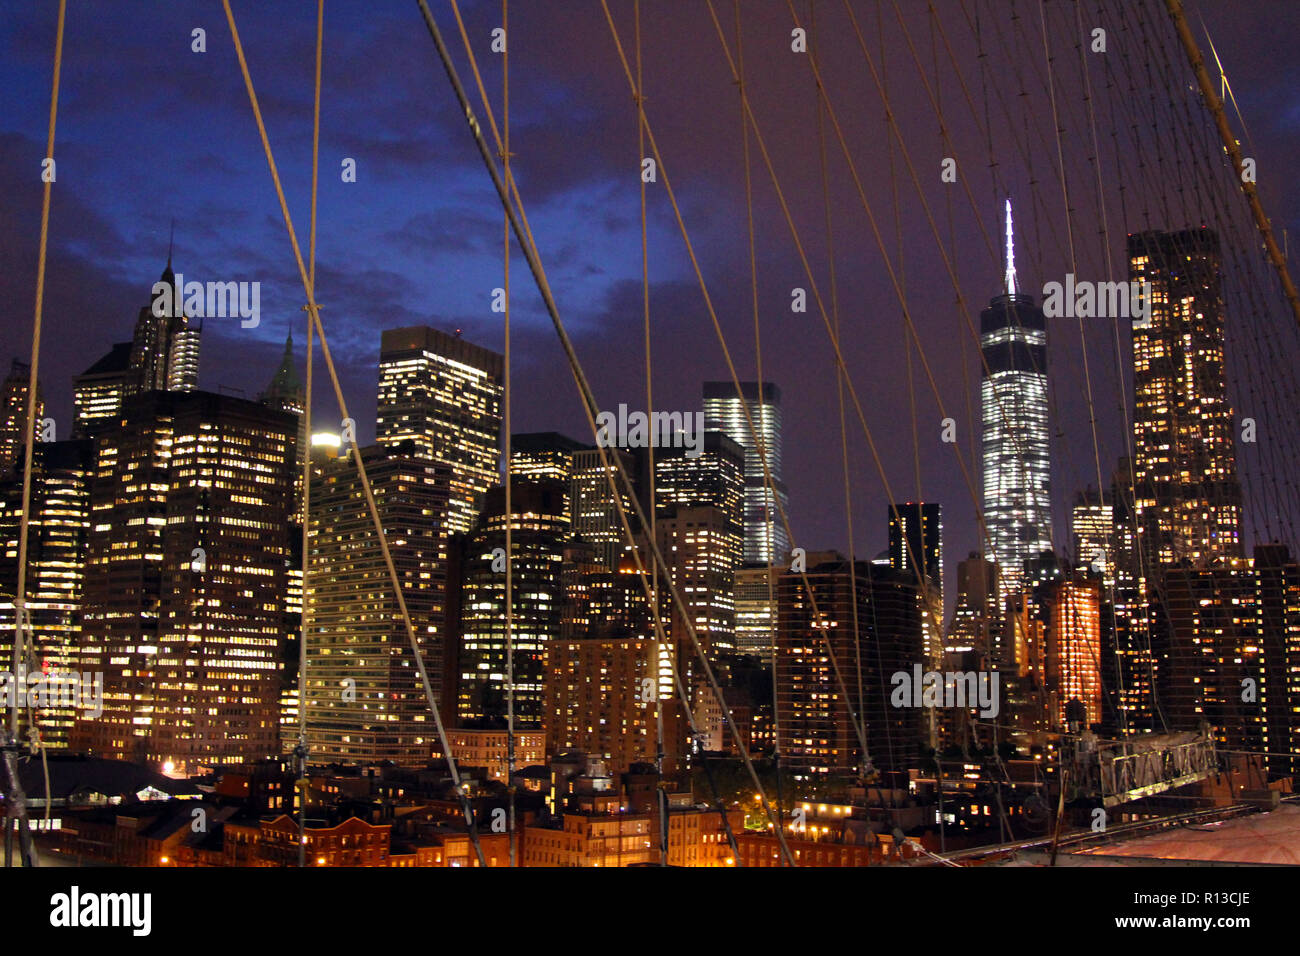 View of lower Manhattan through cable trusses of the Brooklyn Bridge, New York, NY - Stock Image